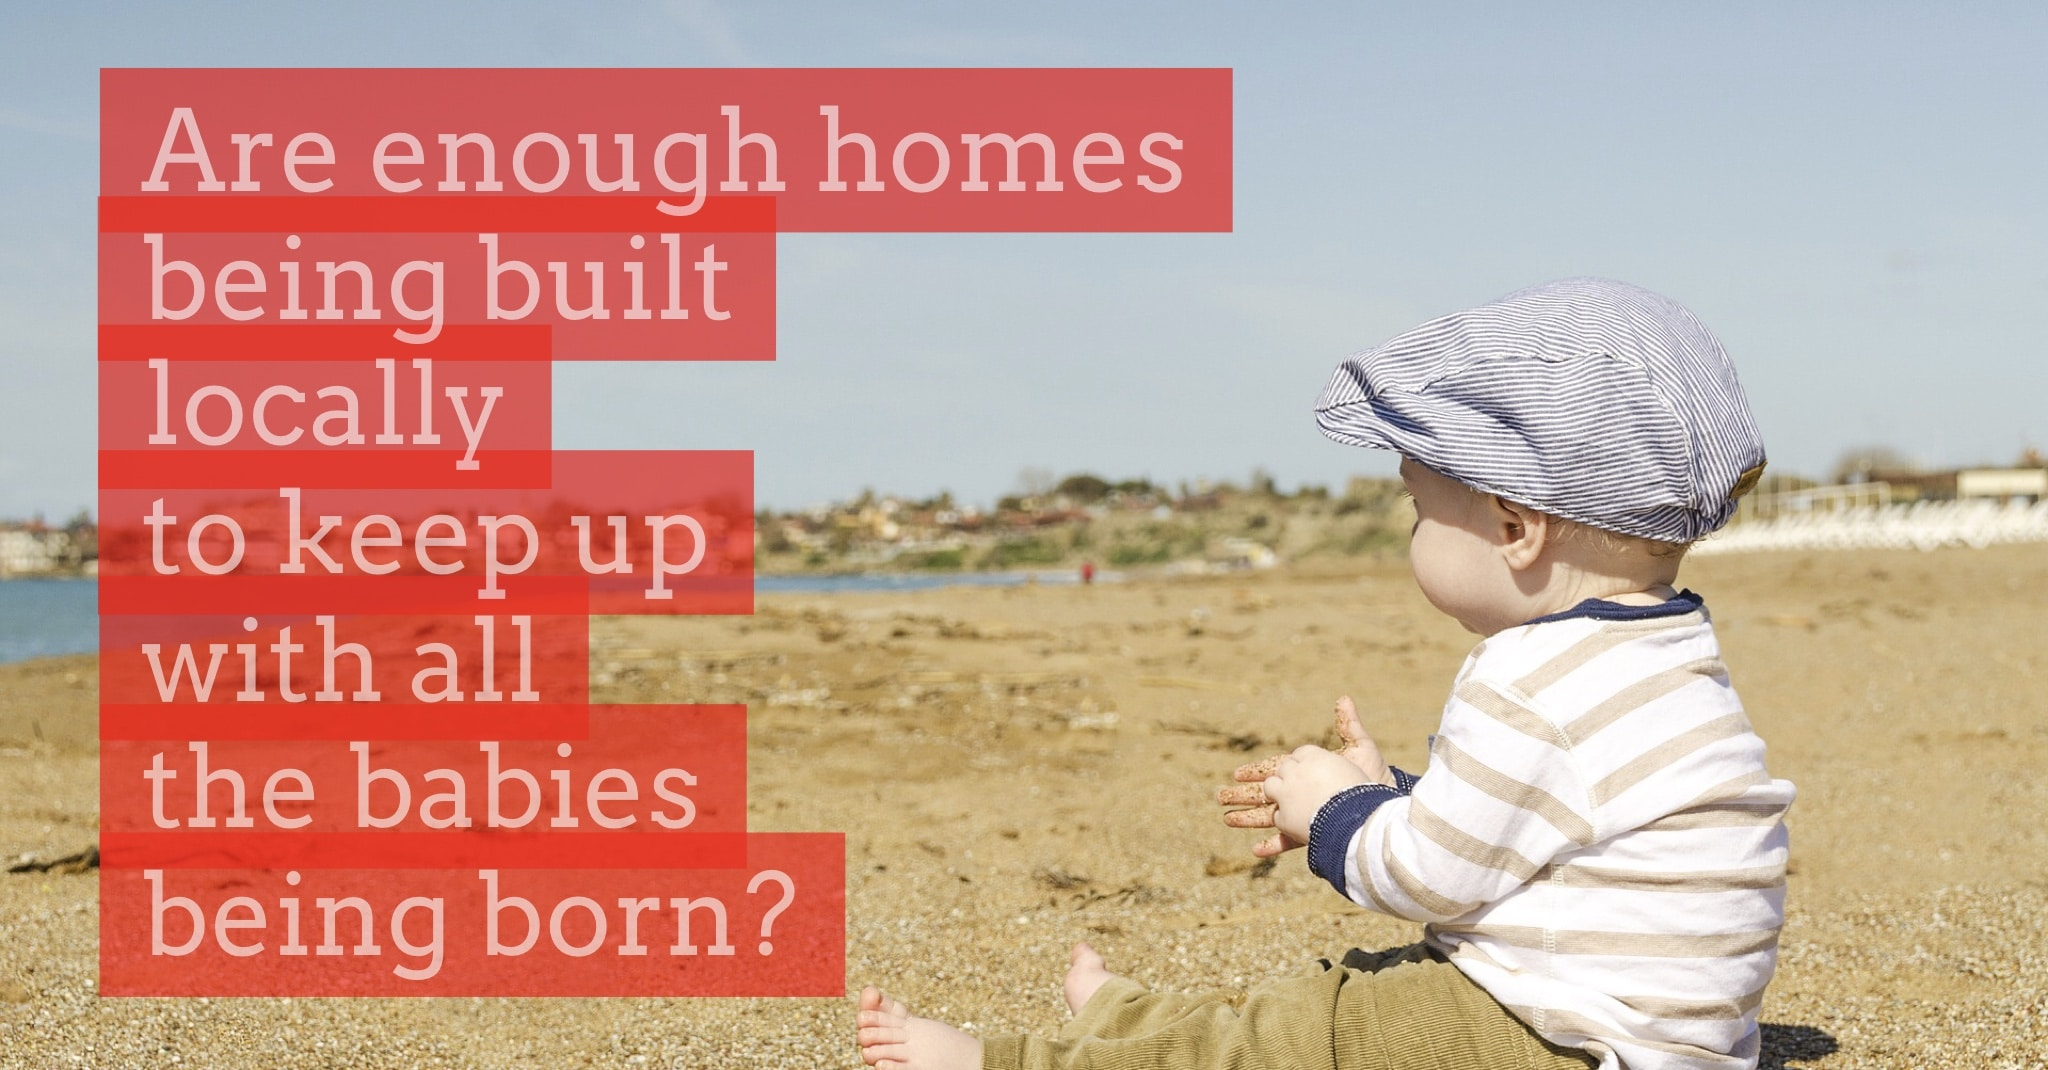 More Than Five Babies Born for Every New Home Built in the Past Five Years in Canterbury